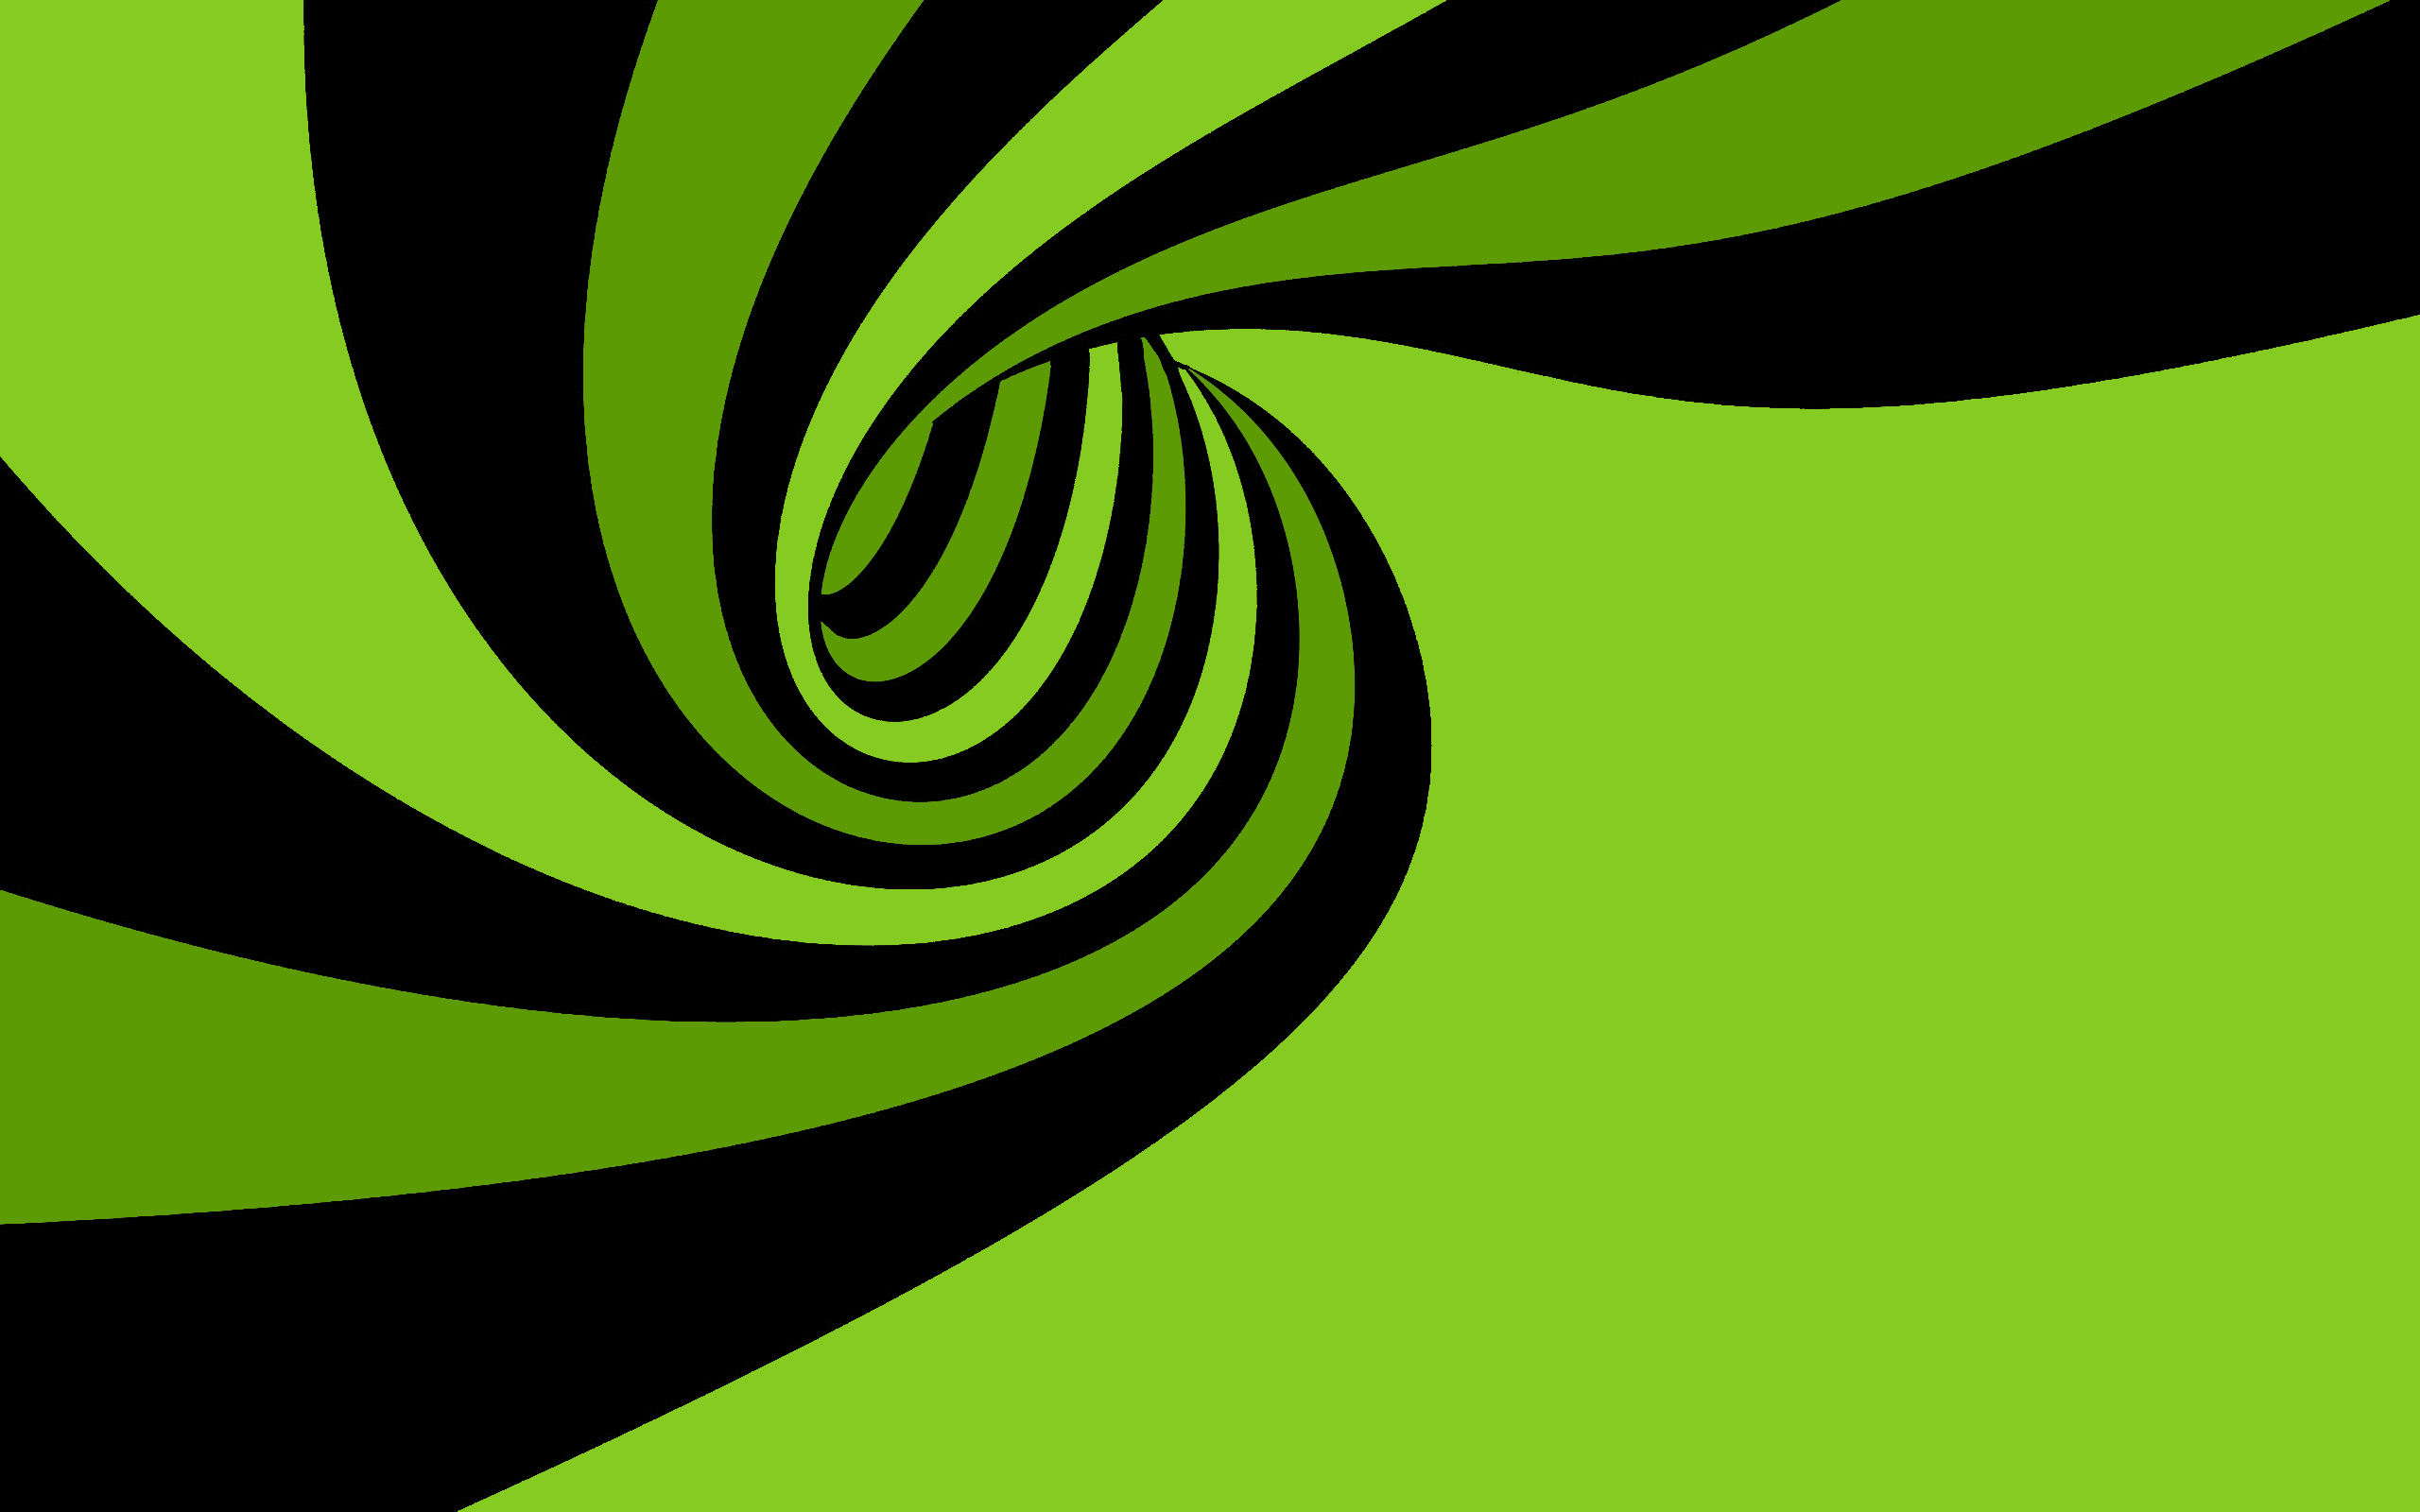 Green Spiral Wallpaper - Green Wallpaper (20988884) - Fanpop fanclubs